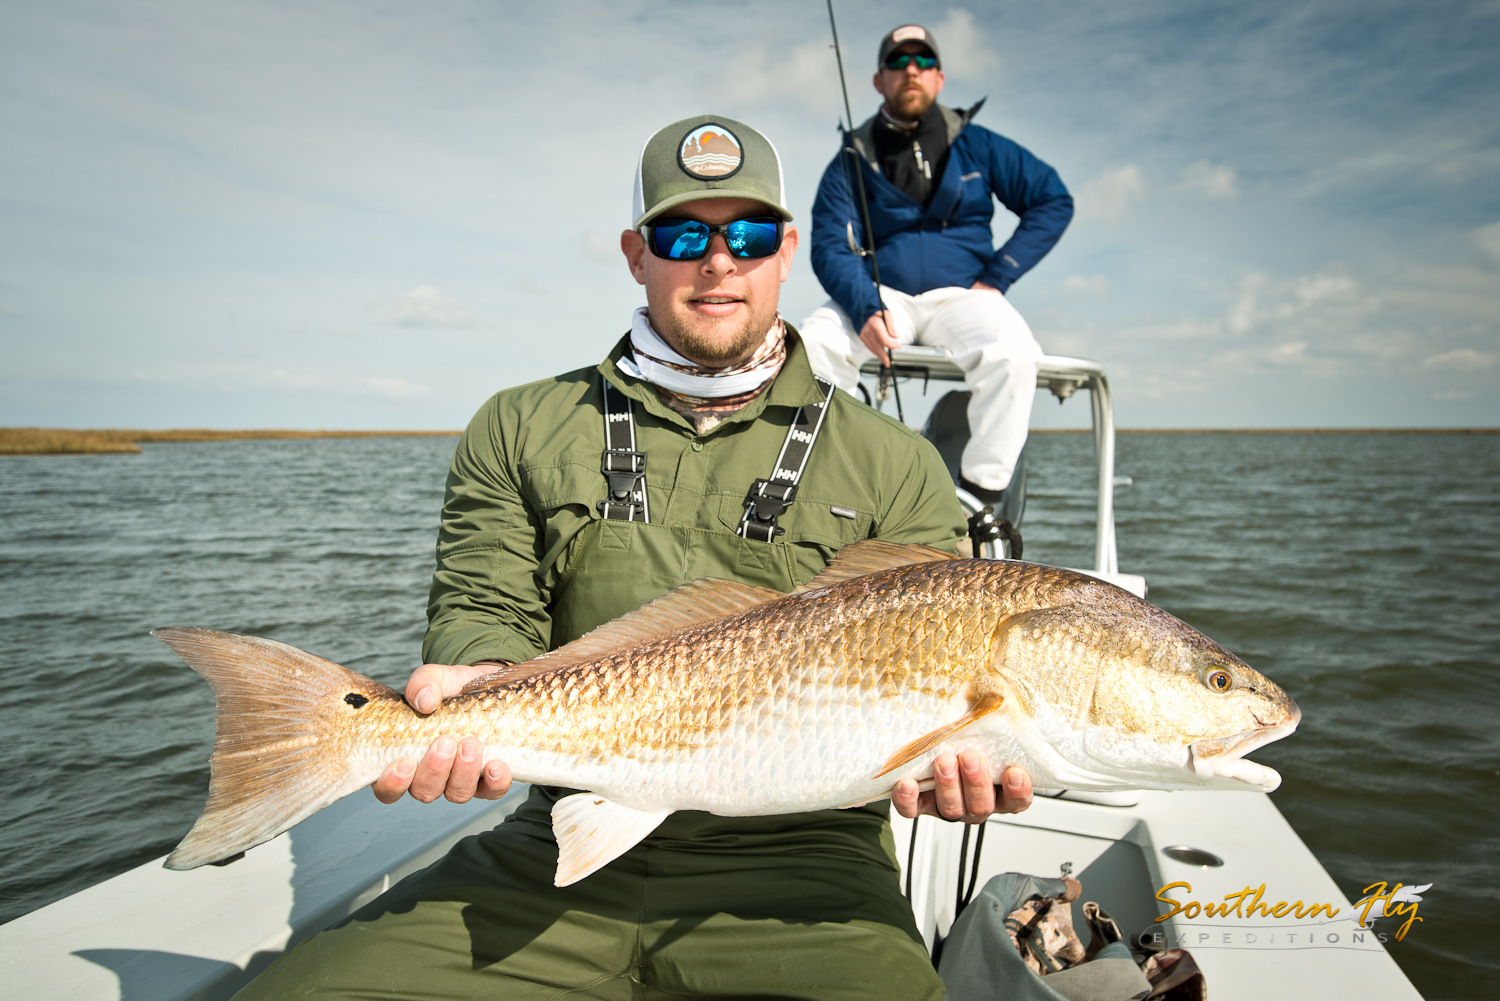 Fly fishing guides southern fly expeditions out of New Orleans Louisiana